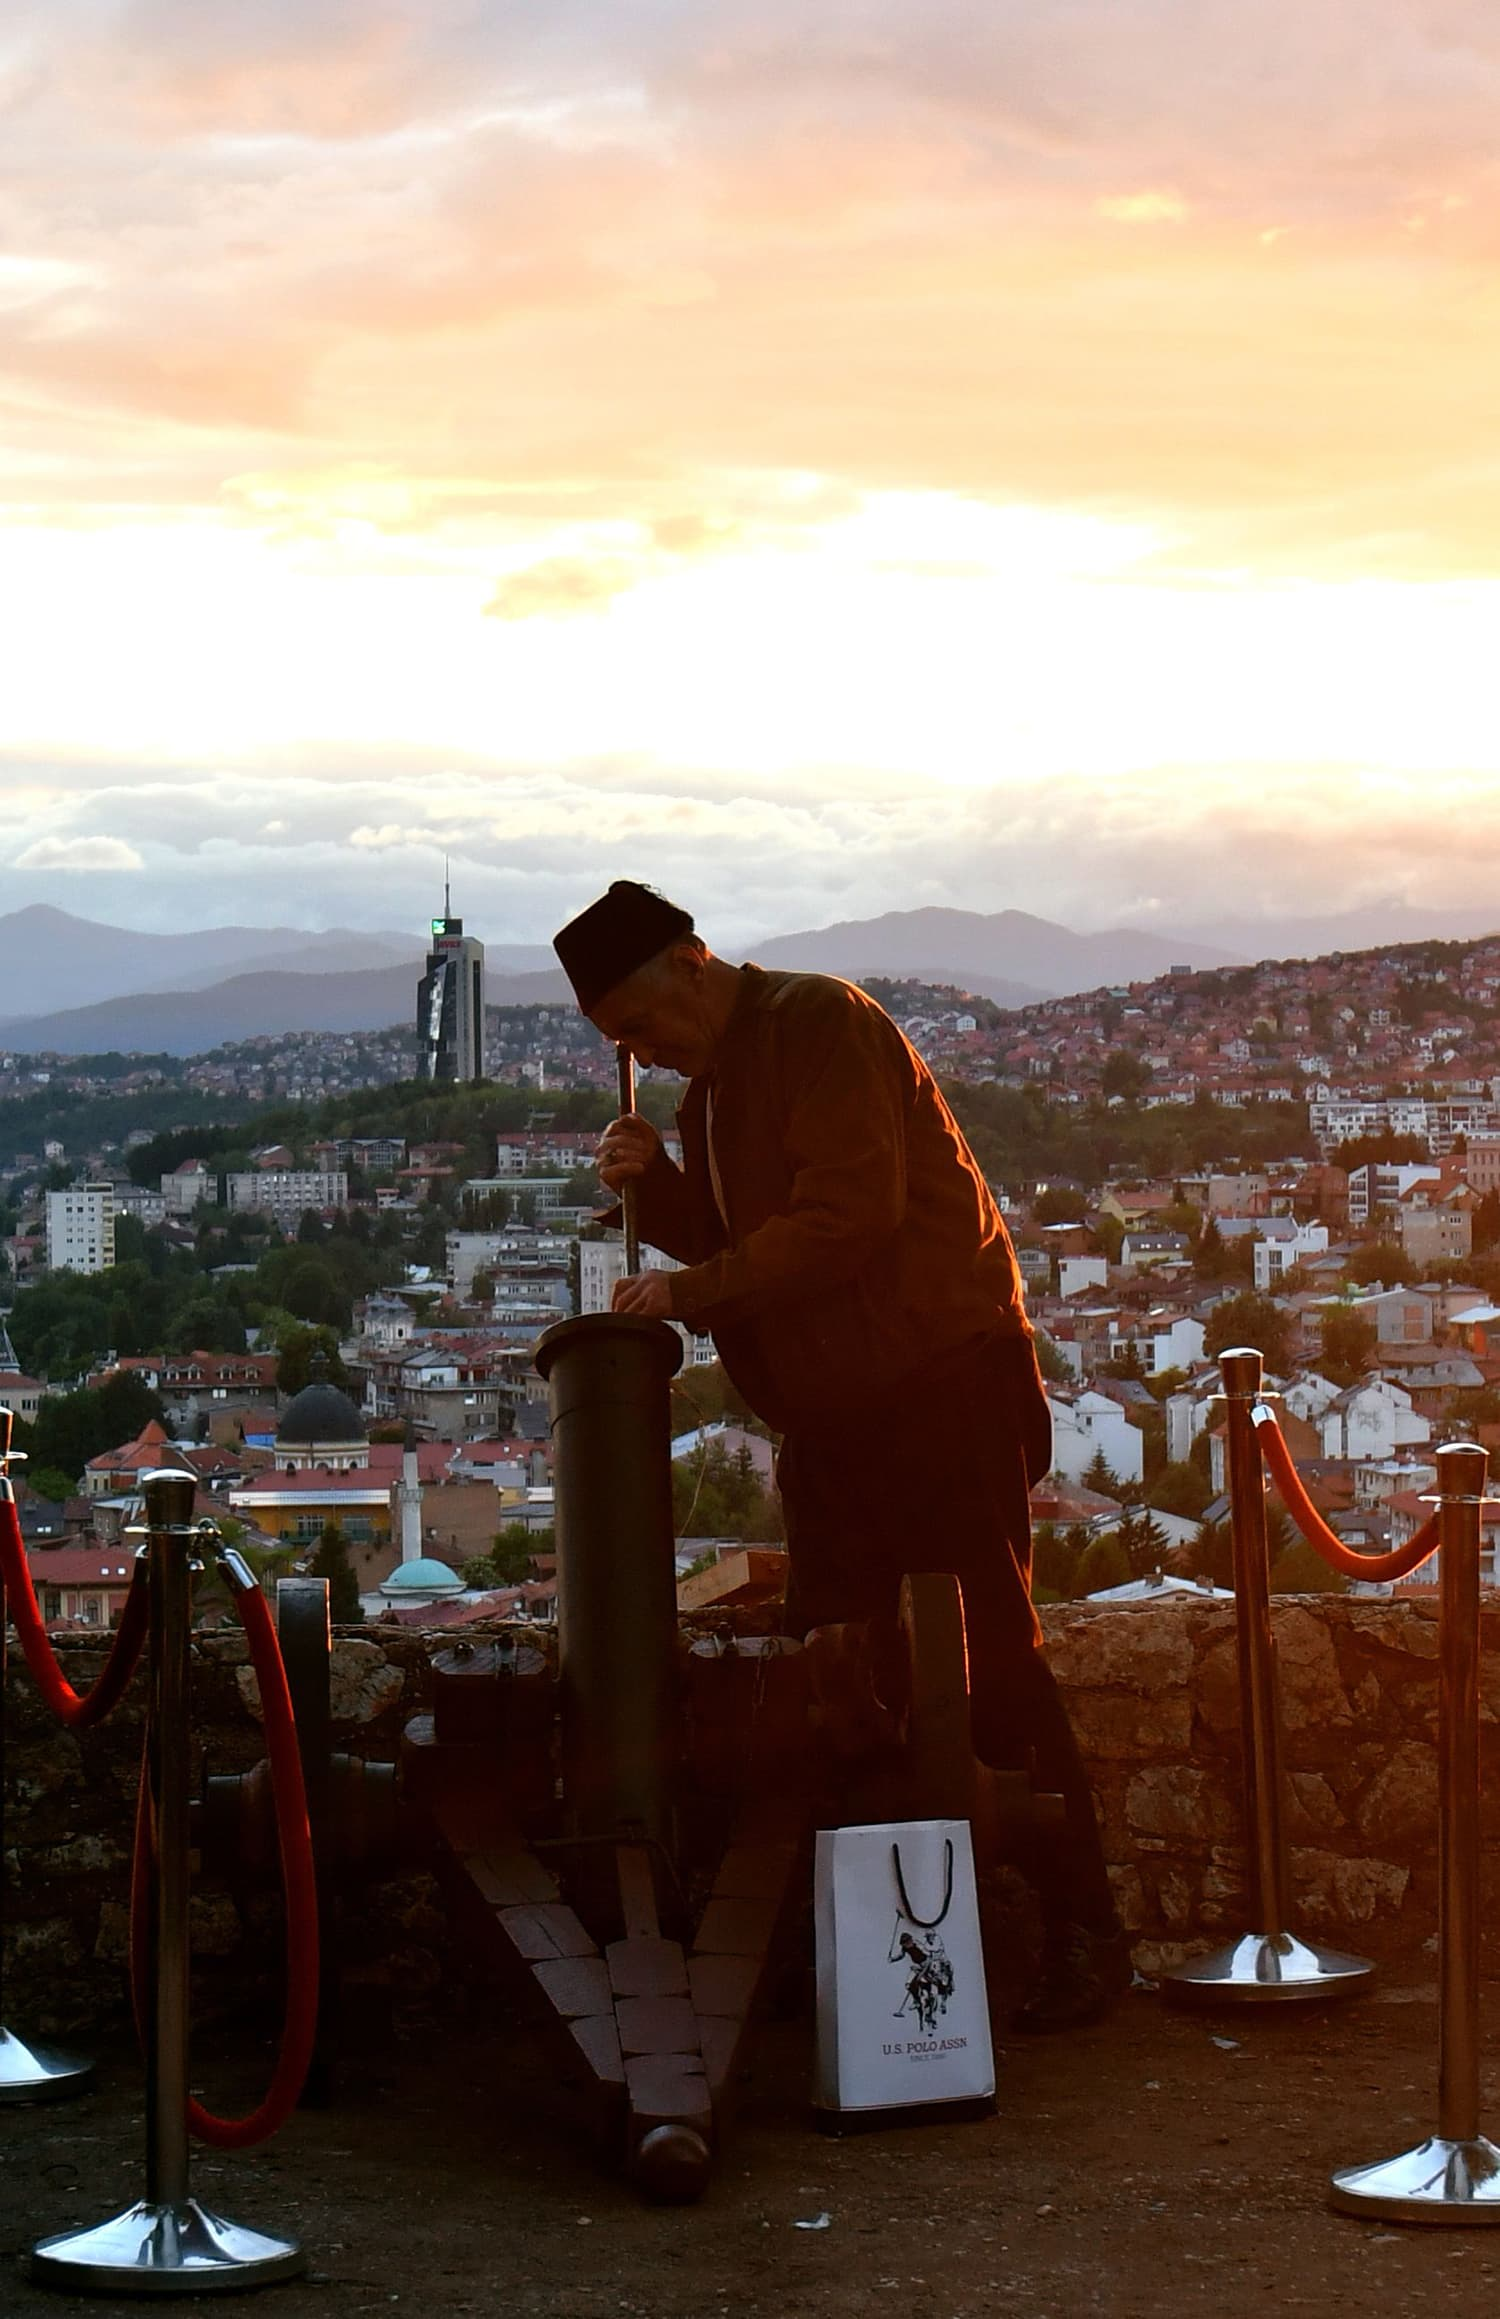 A Bosnian Muslim man loads fireworks mortar, in old town of Sarajevo. Percussion round fired in sunset marks the end of daily fasting, every day during the Islamic holy month of Ramazan. — AFP